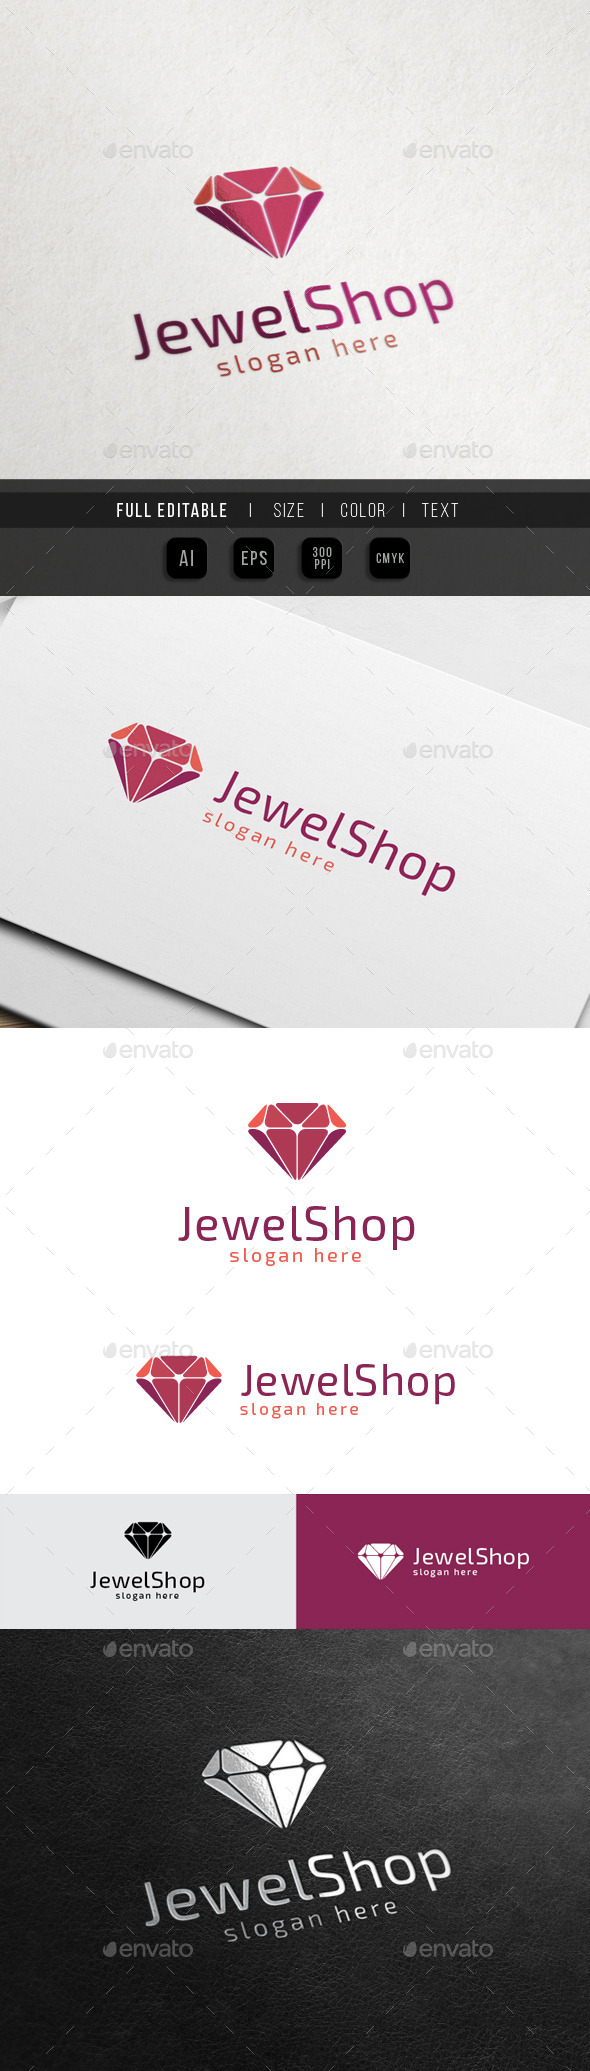 Jewelry Shop - Diamond Art - Objects Logo Templates